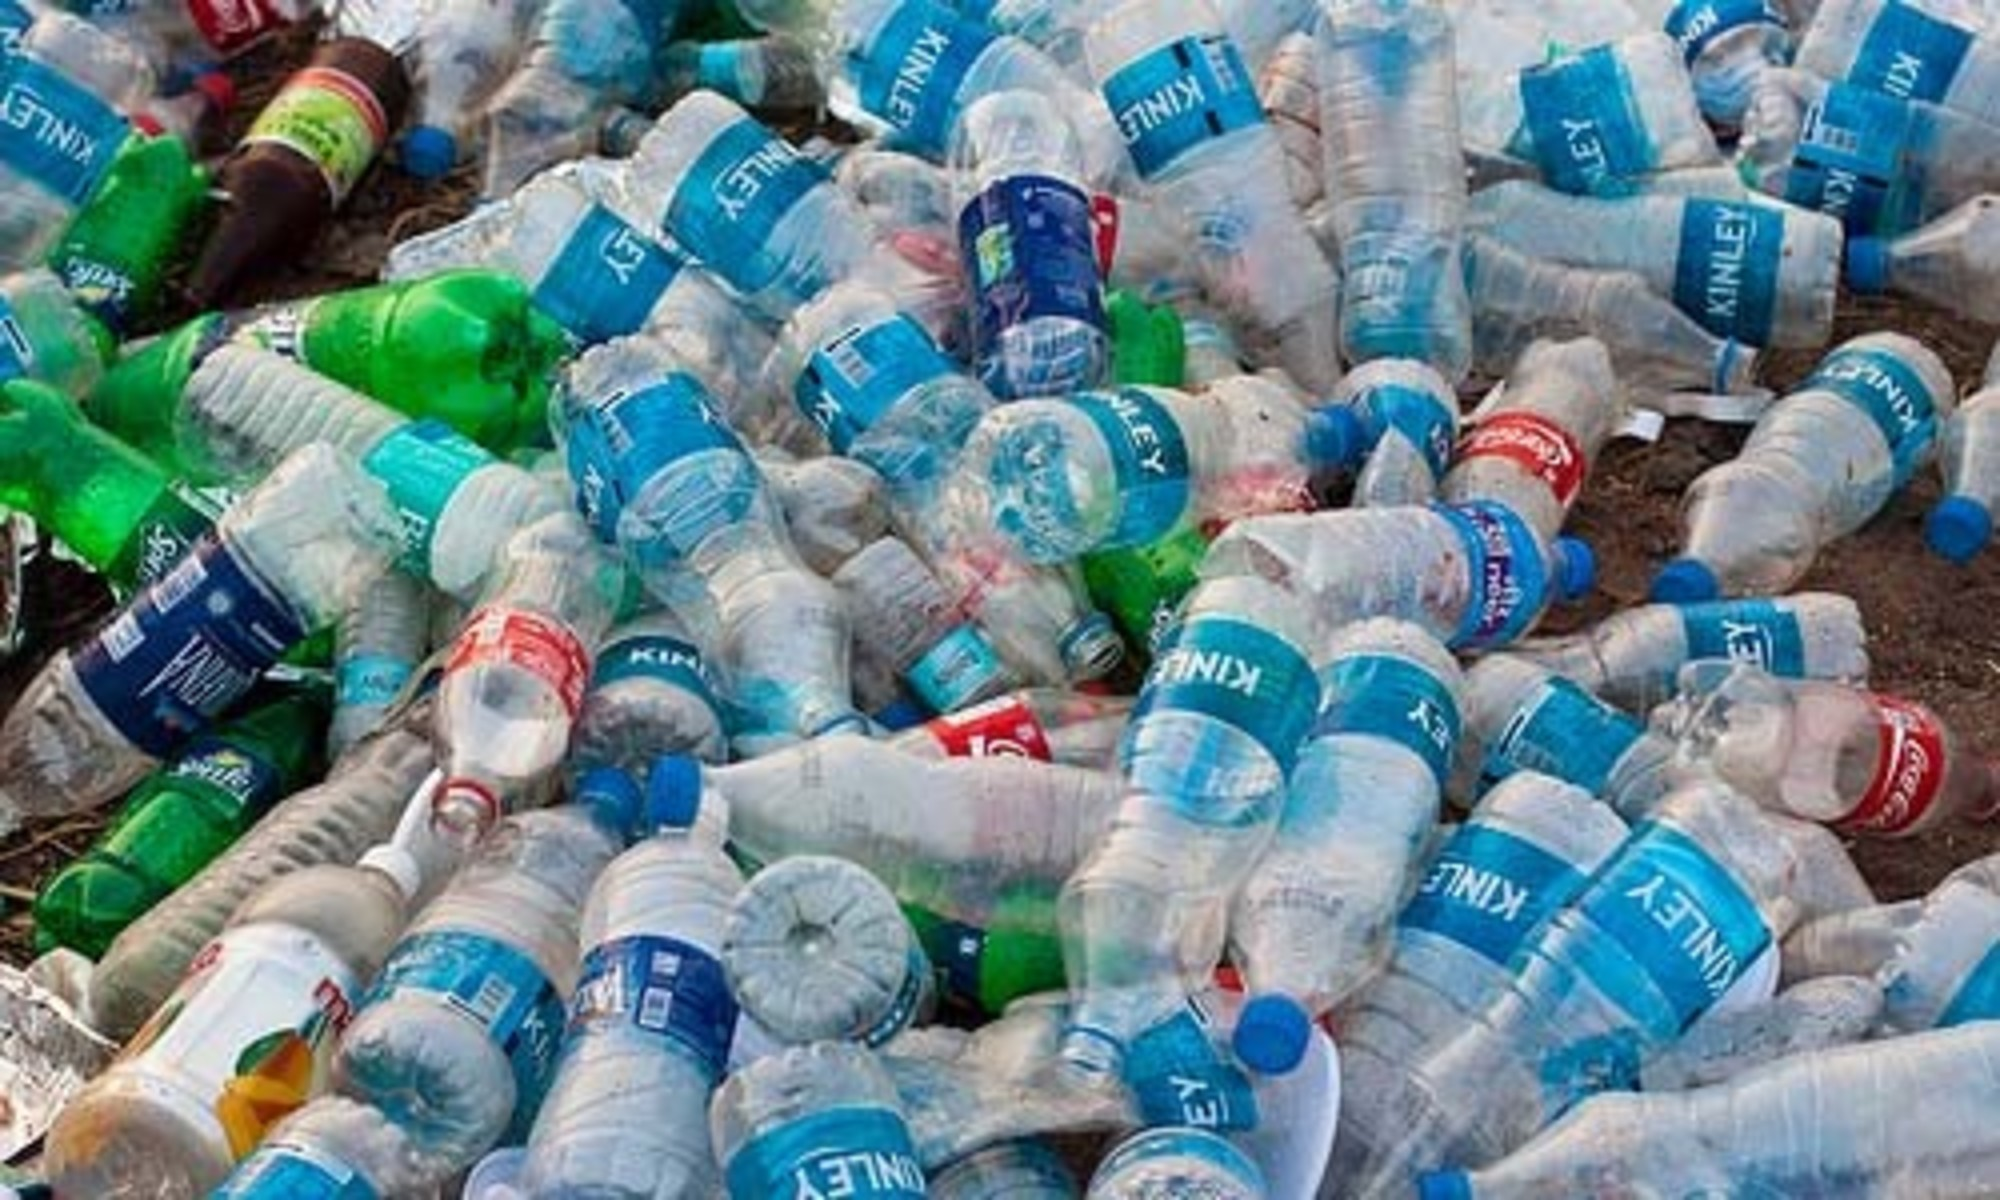 sale and purchase of recycled glass bottles in Houston